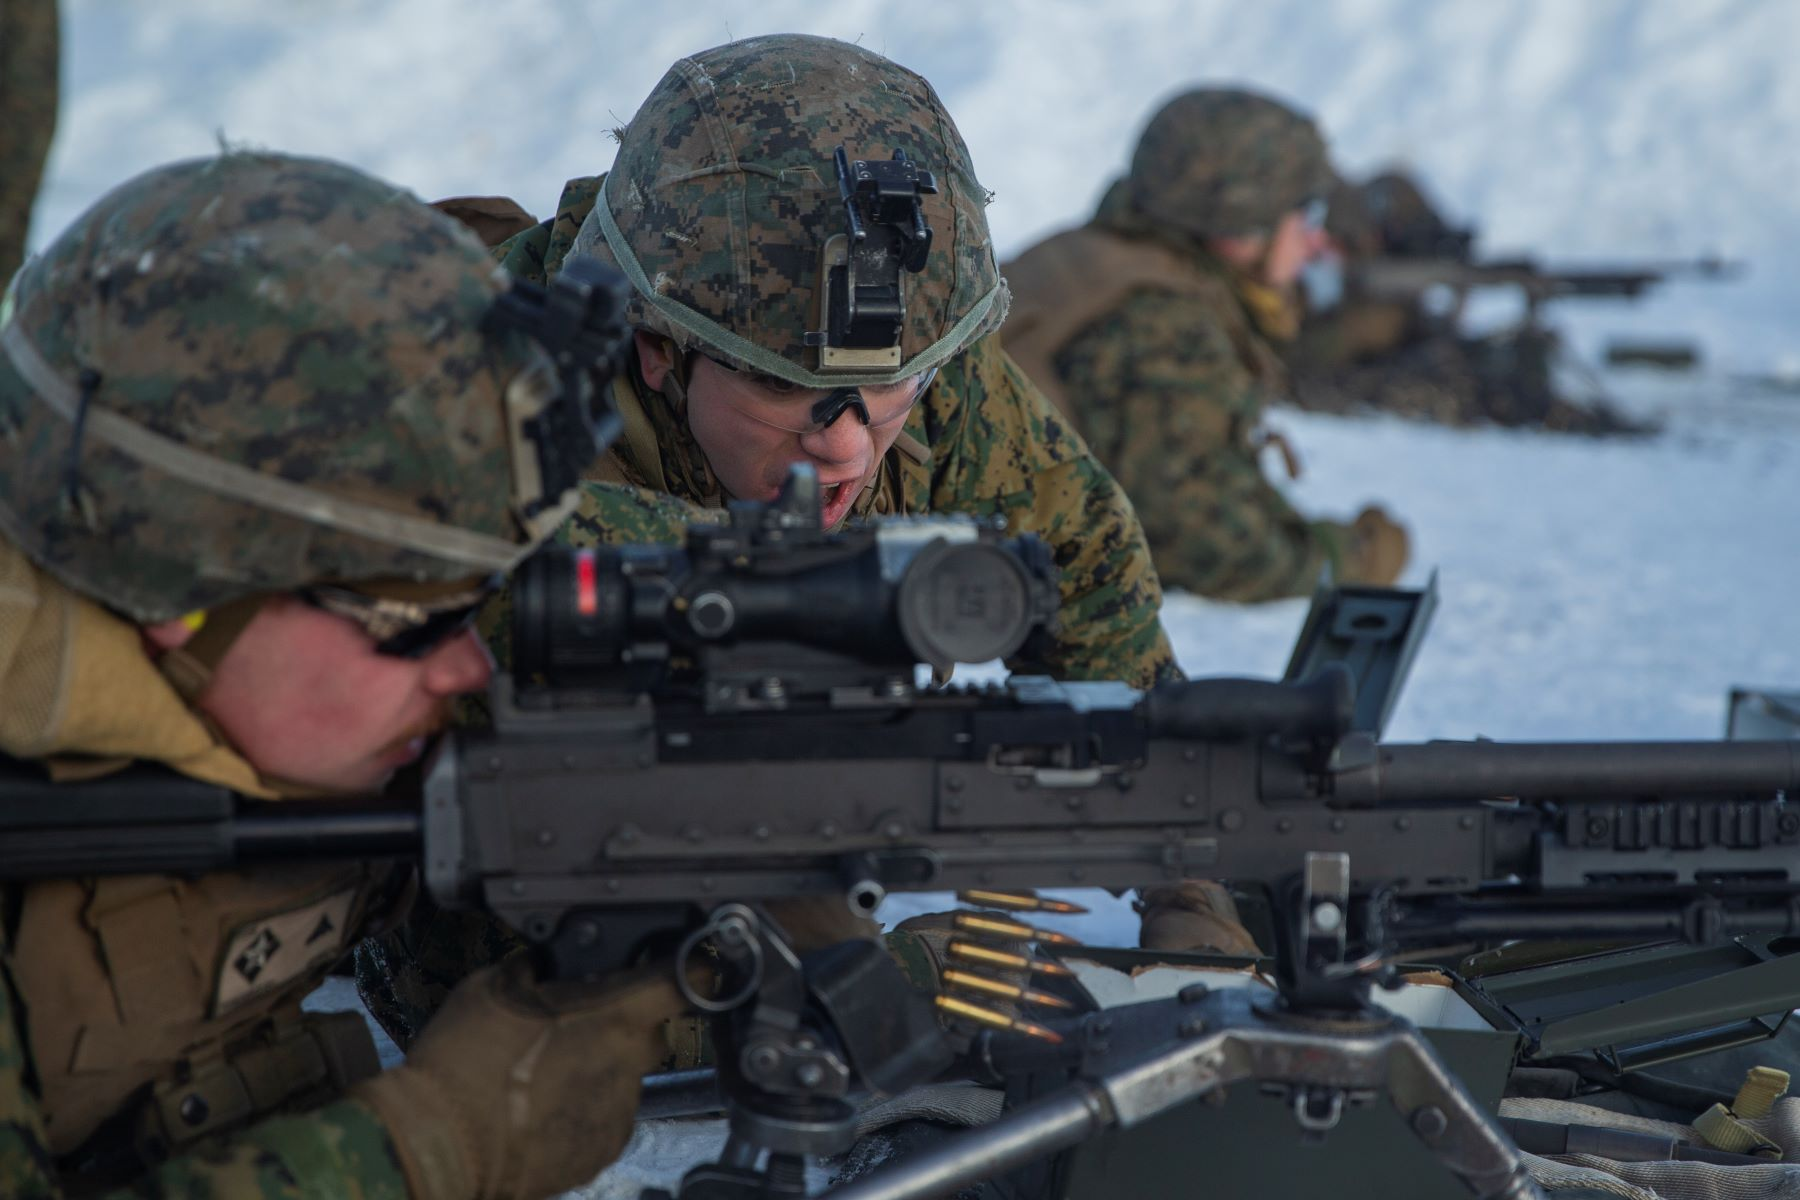 After 50 Years, the Army and Marine Corps Are Closing In on Dumping Brass-Cased Ammo